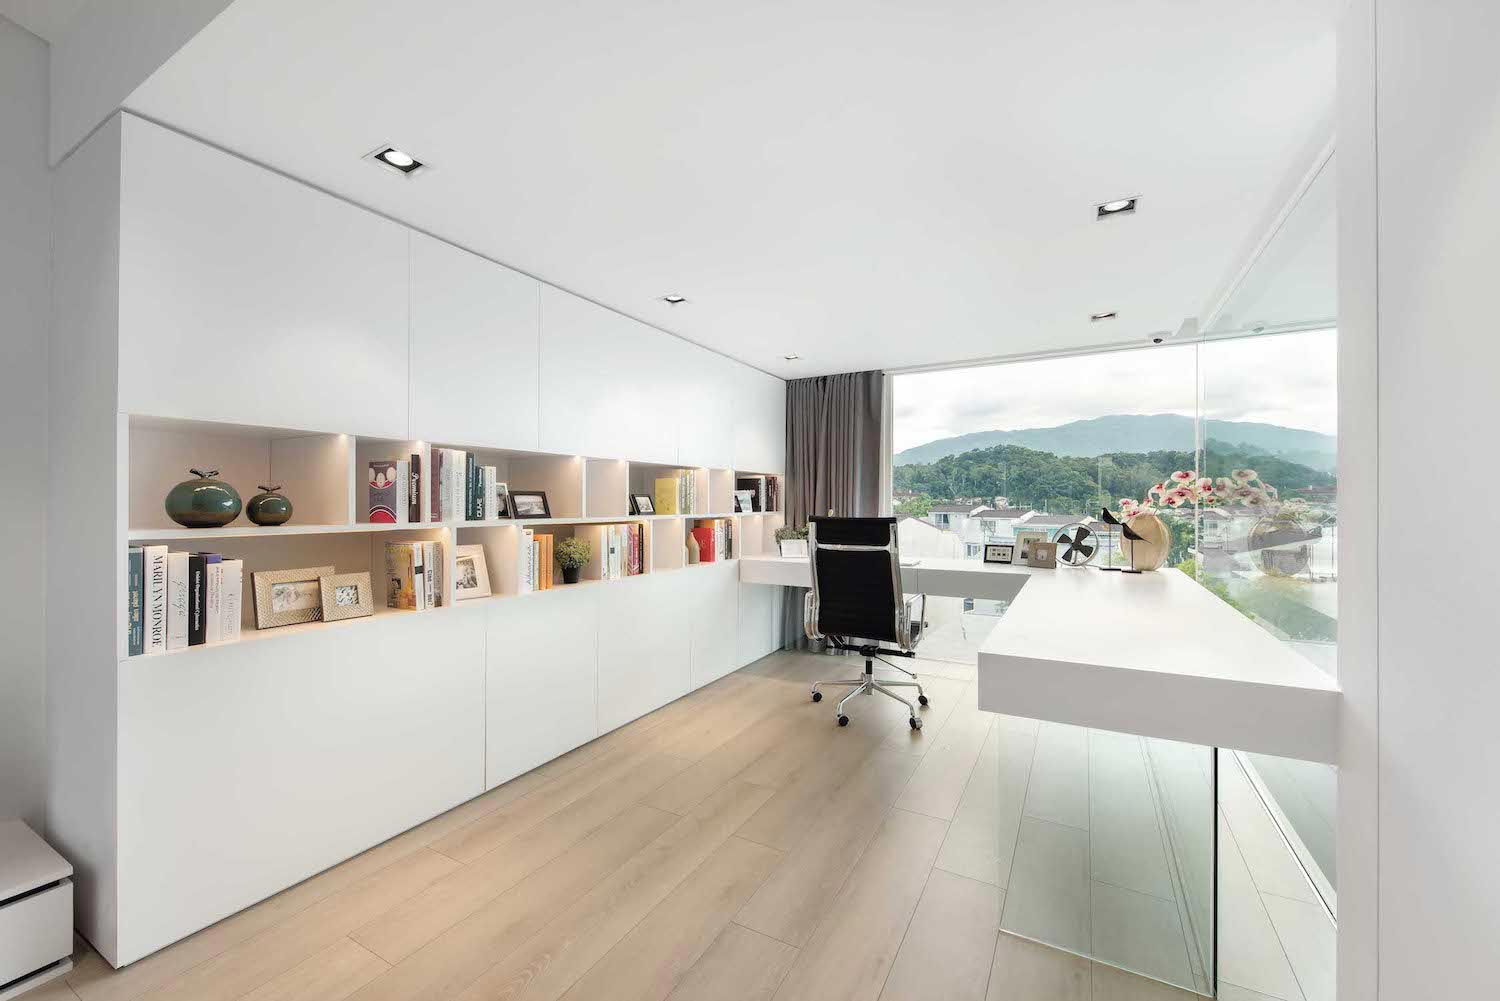 Contemporary White Walls With Light Wooden Flooring Make